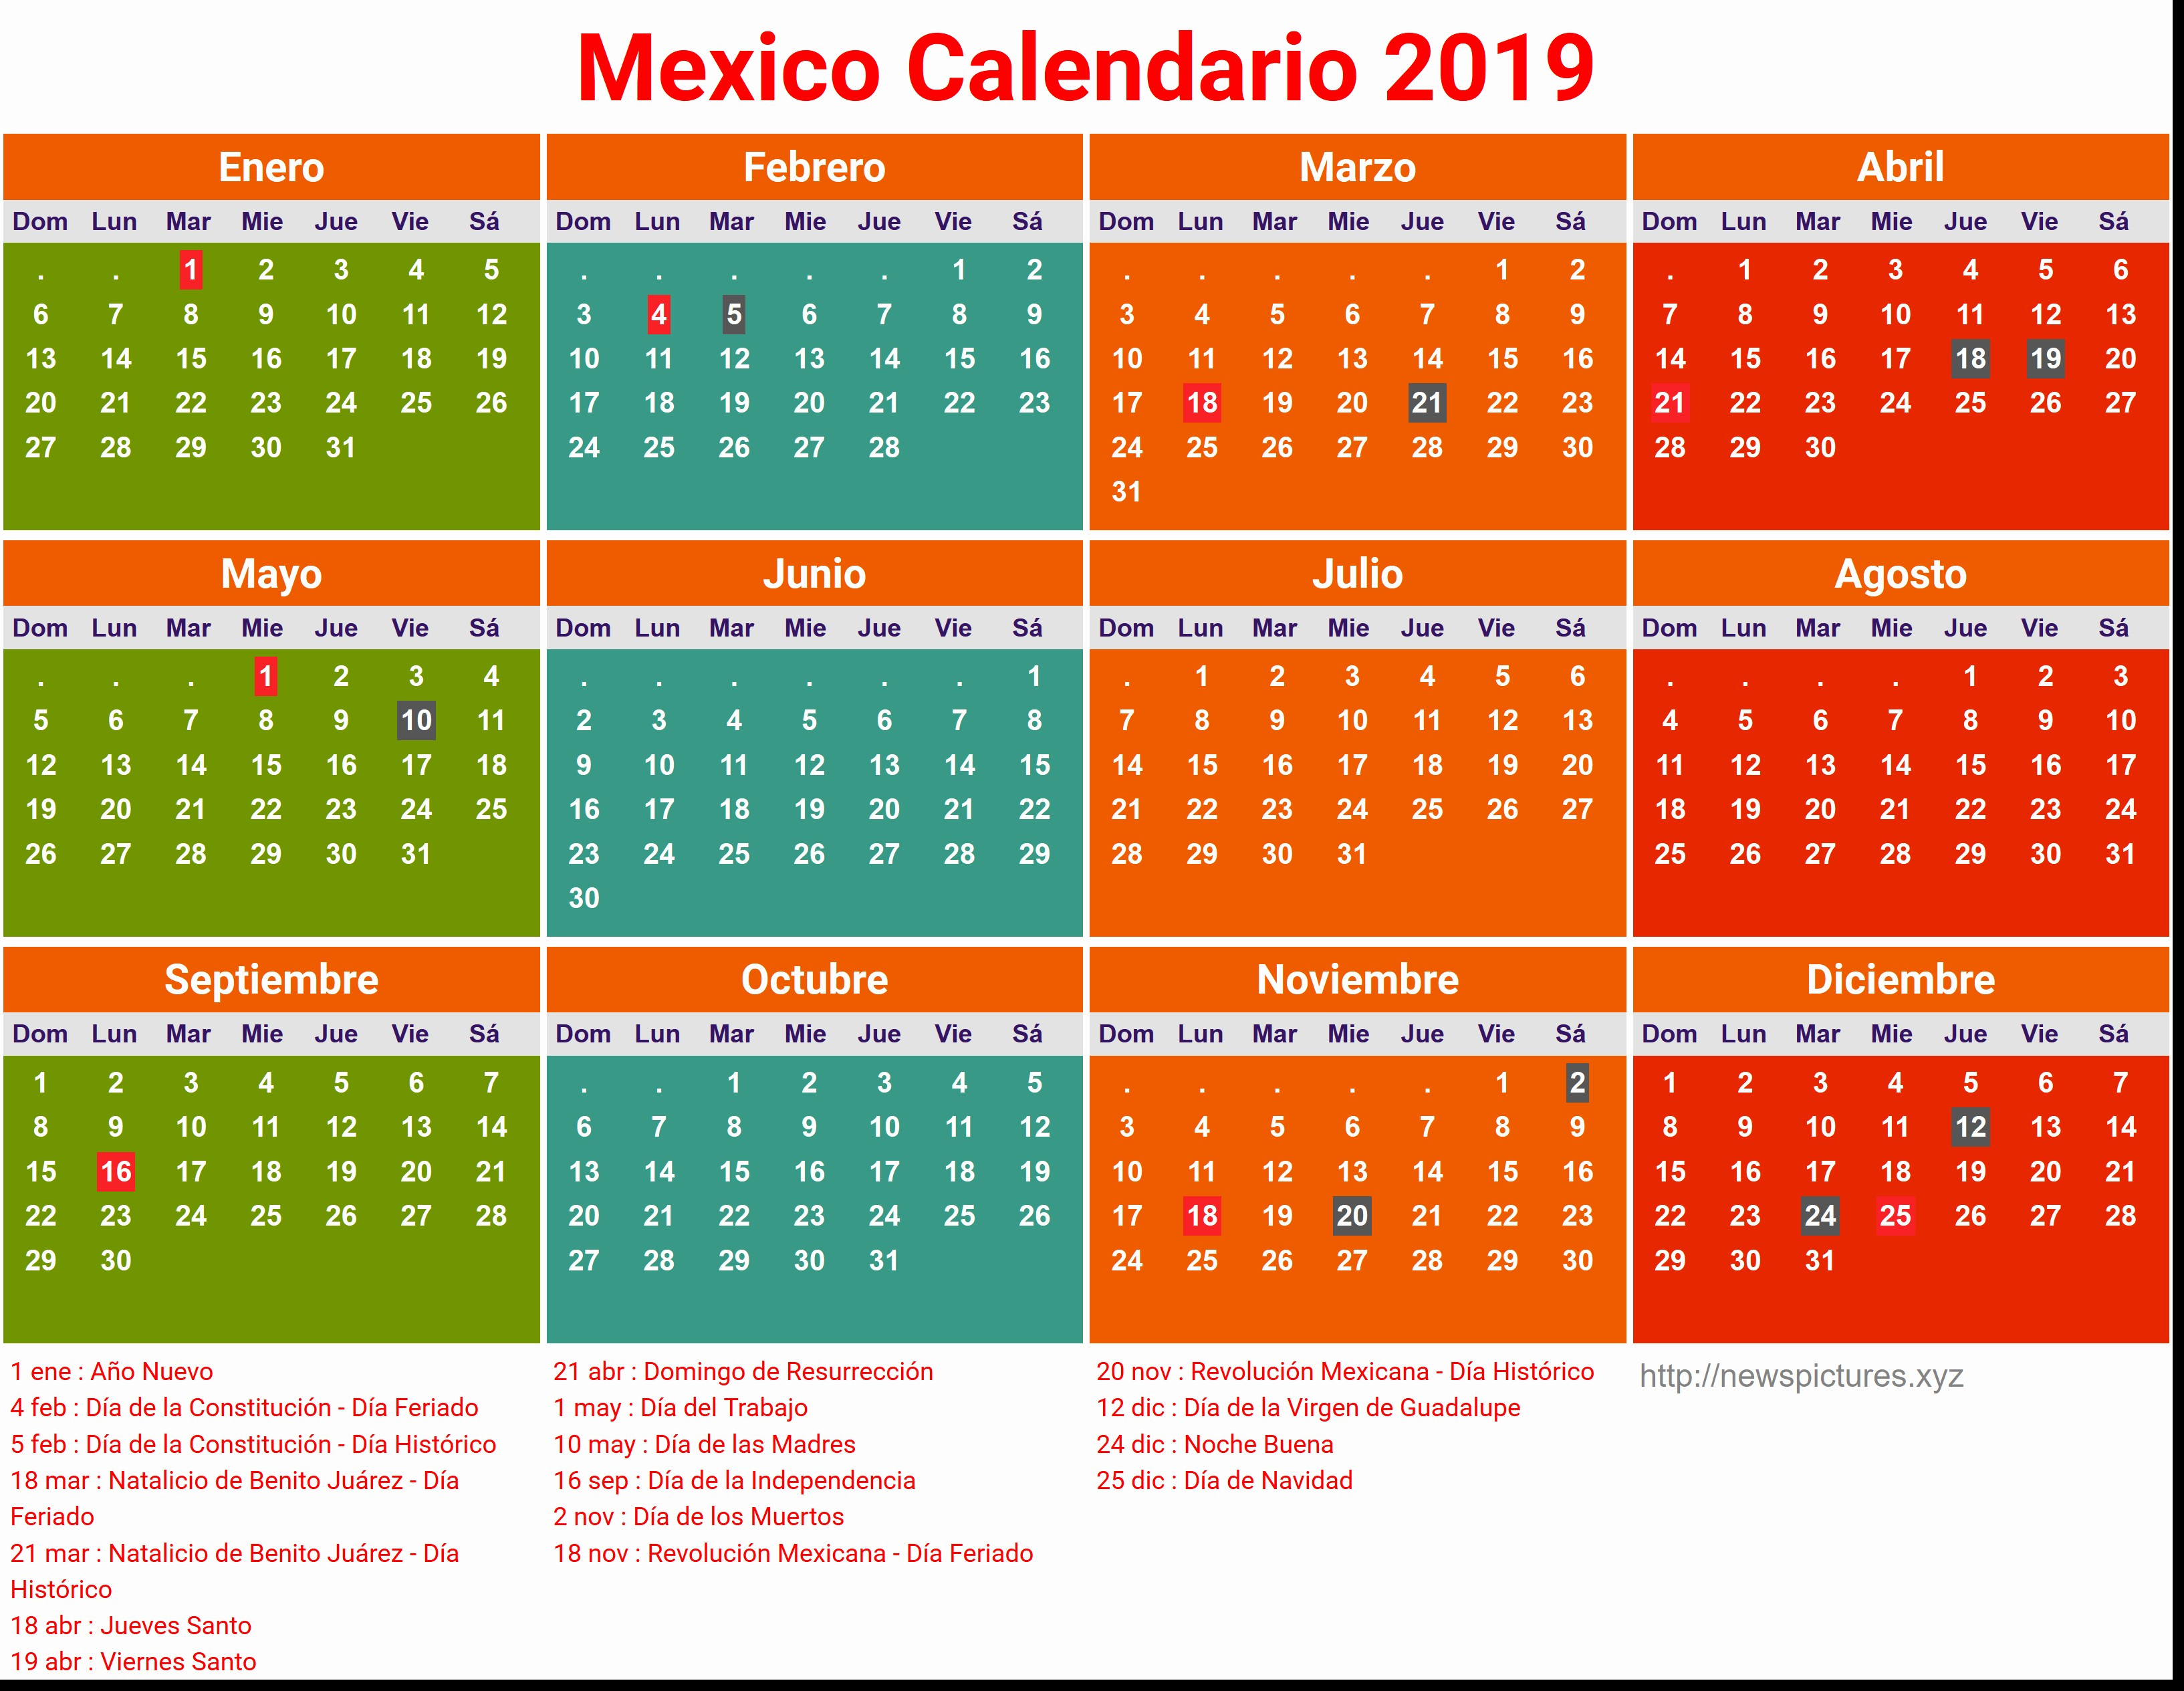 Prensa Calendario Michel Zbinden Abril 2019 intended for Calendario Zbinden 2020